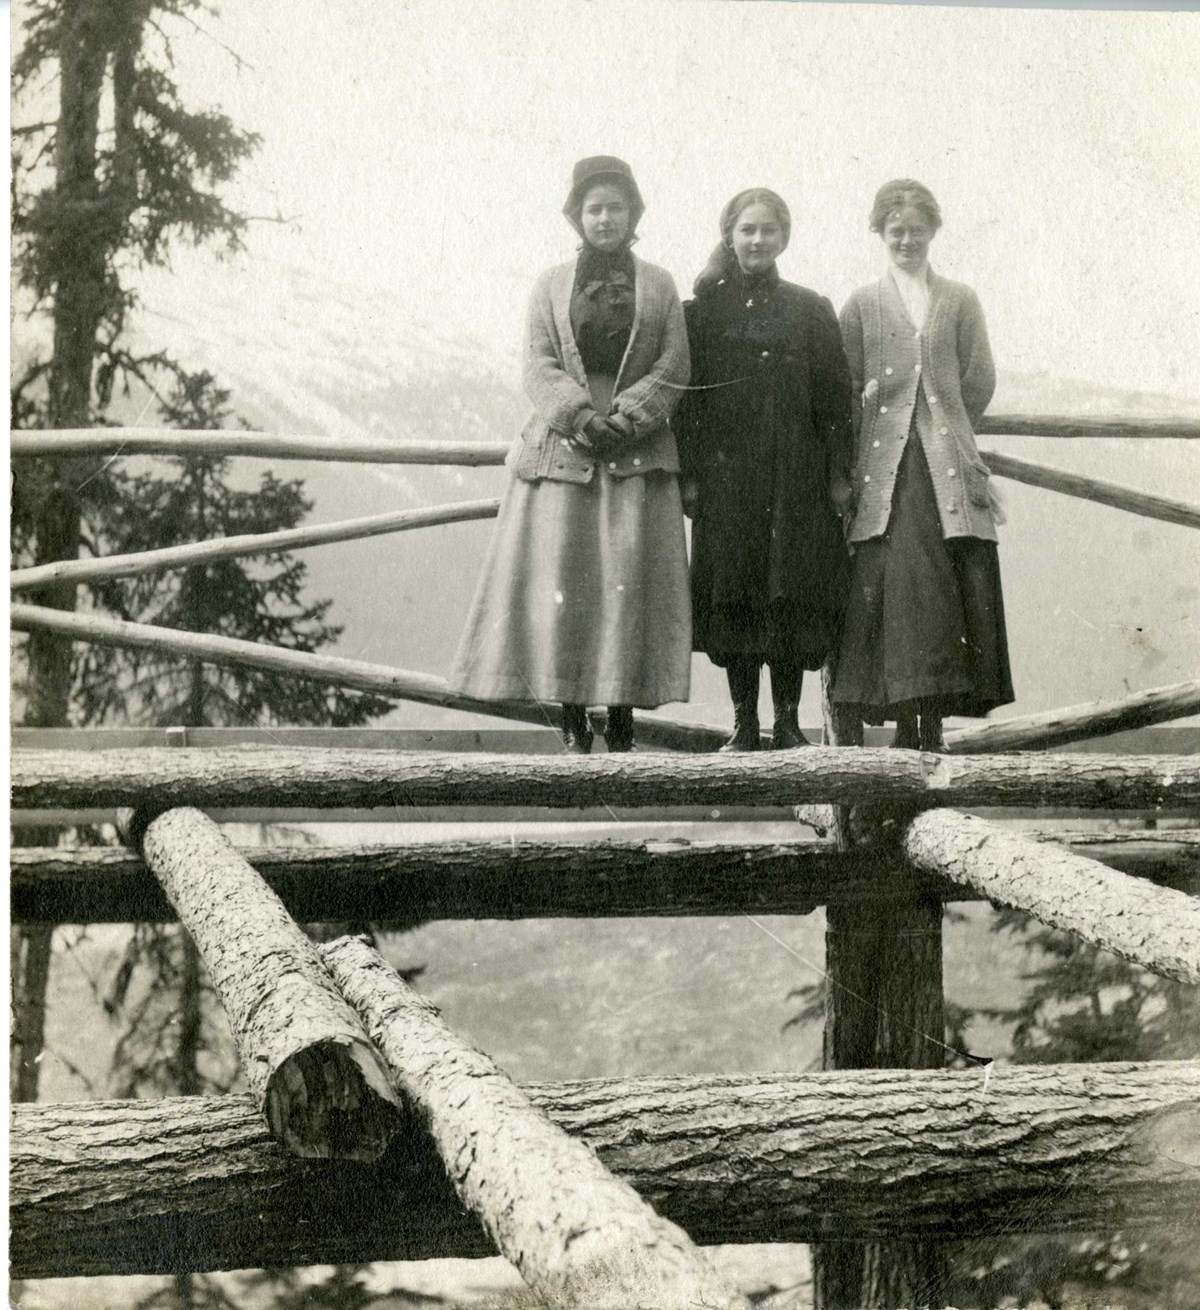 Three woman stand on a stack of logs in dresses